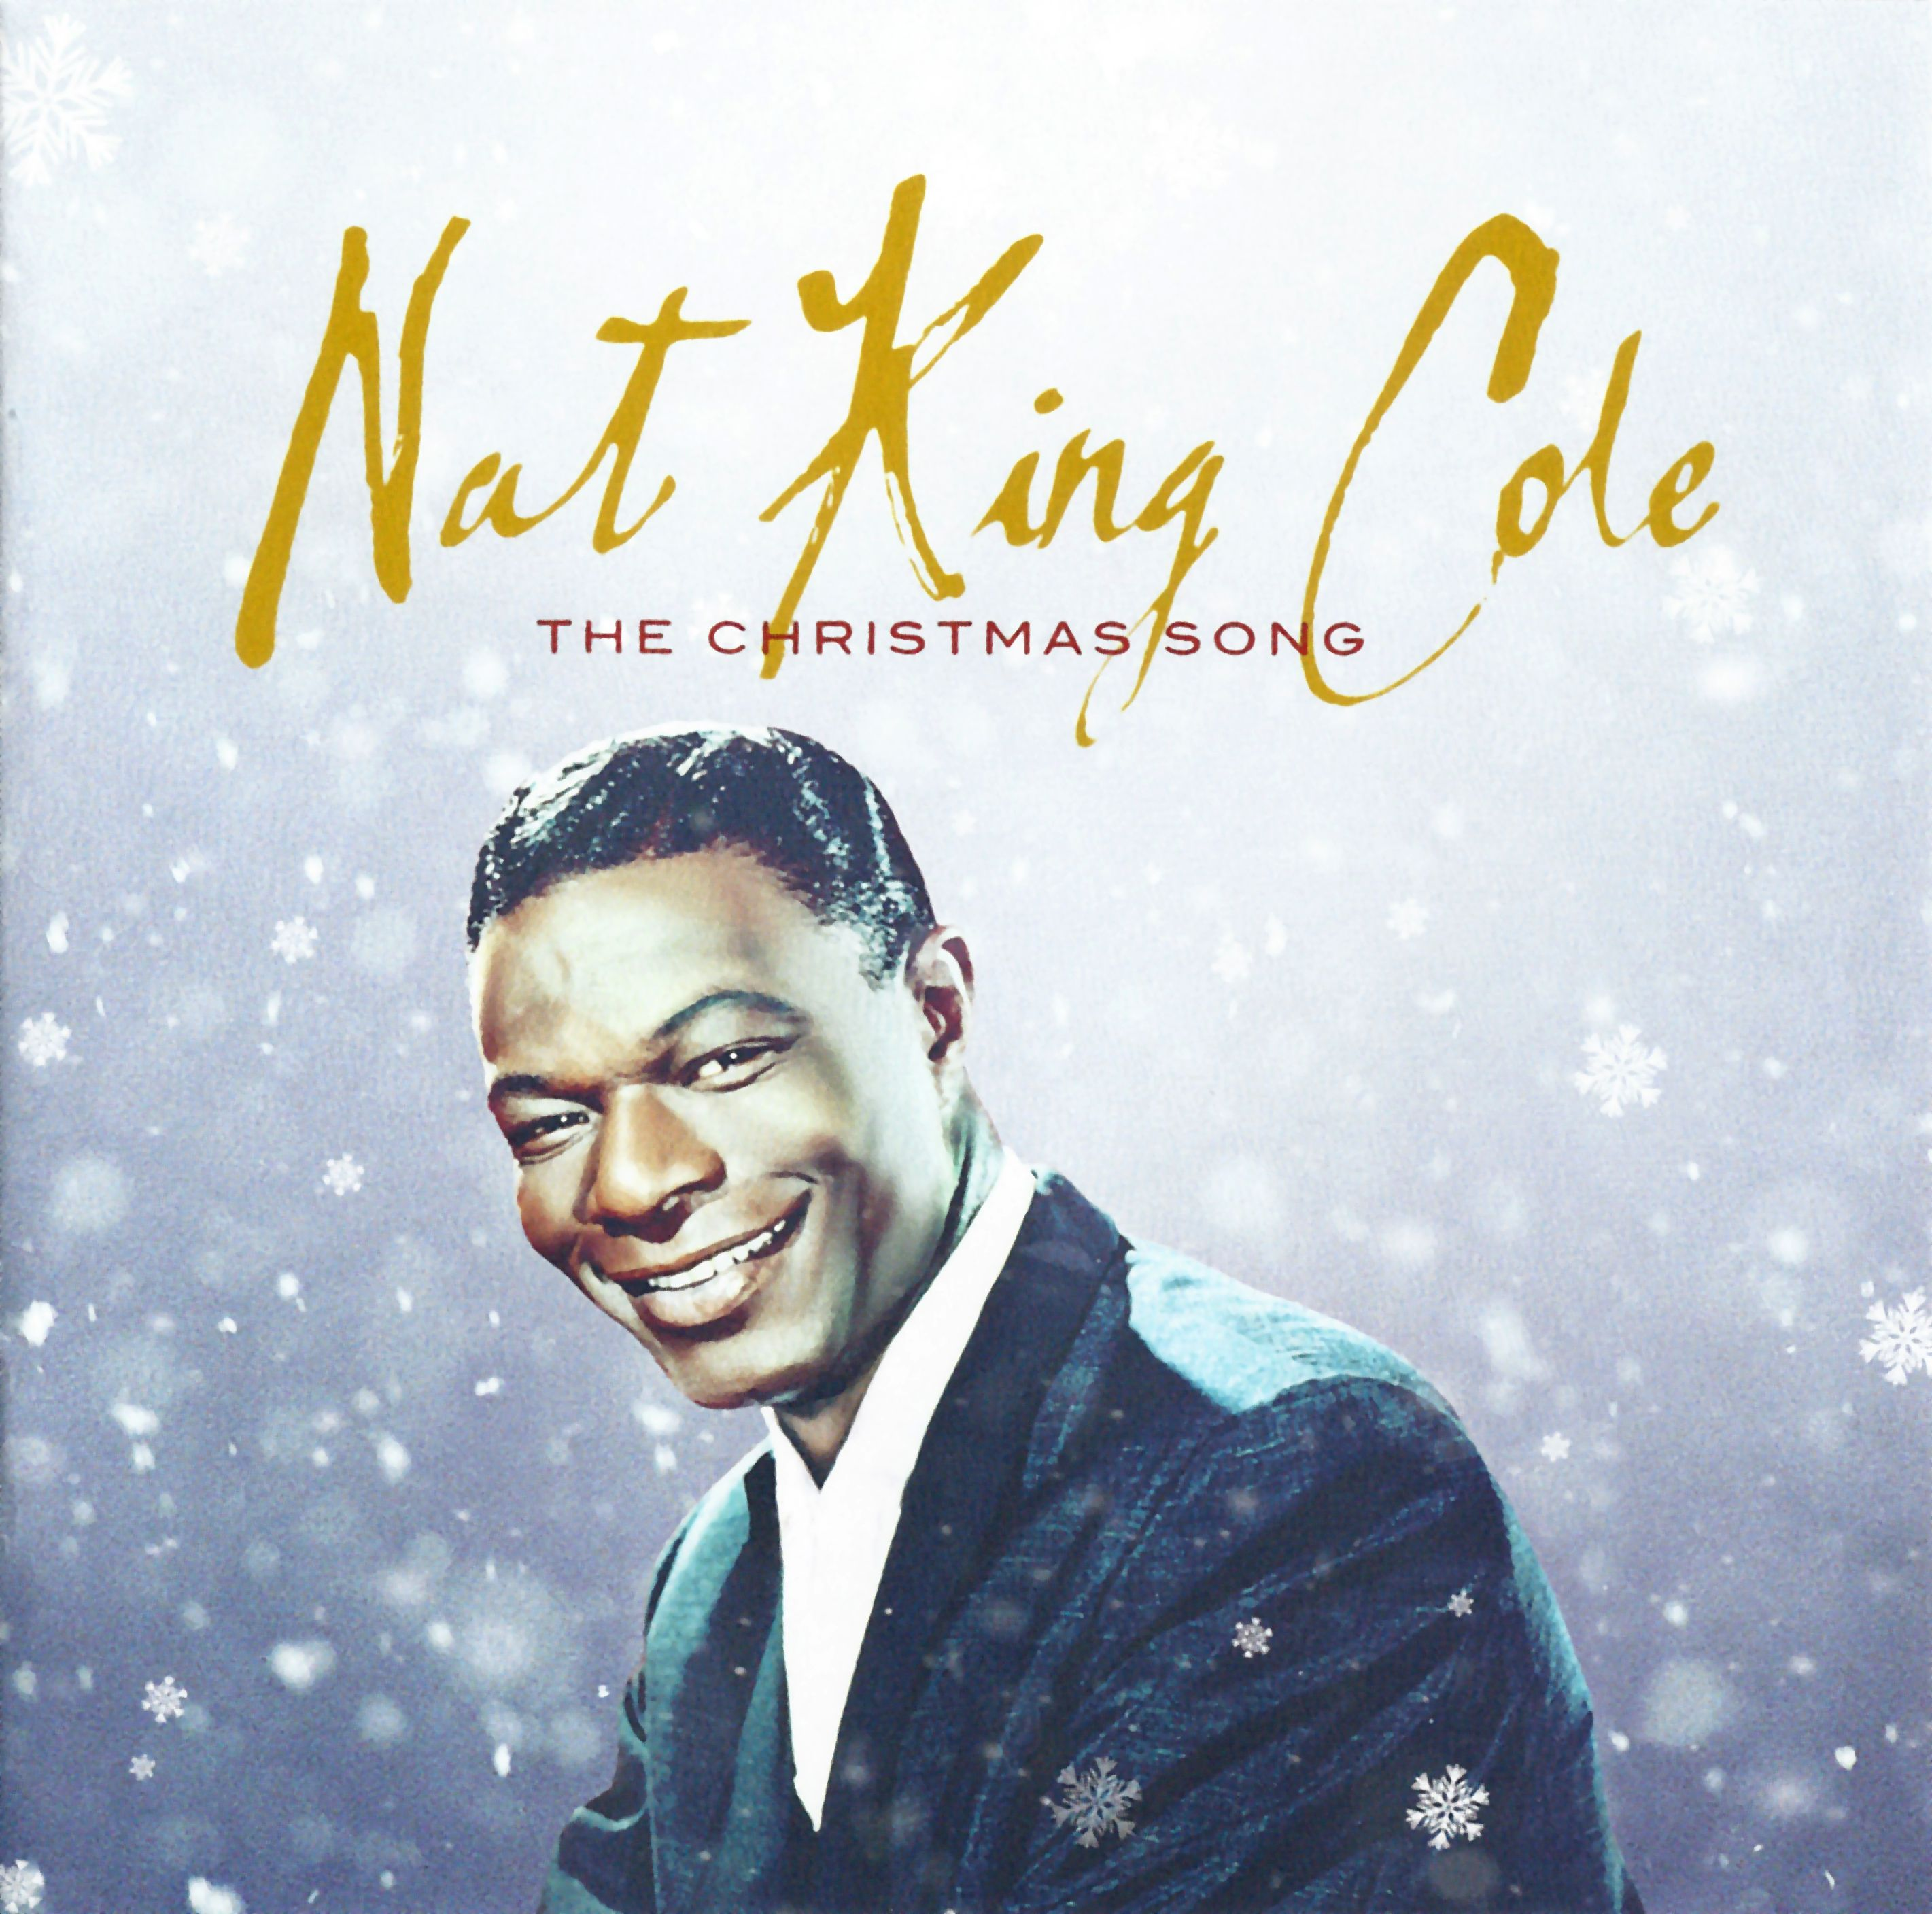 Nat King Cole - The Christmas Song album cover